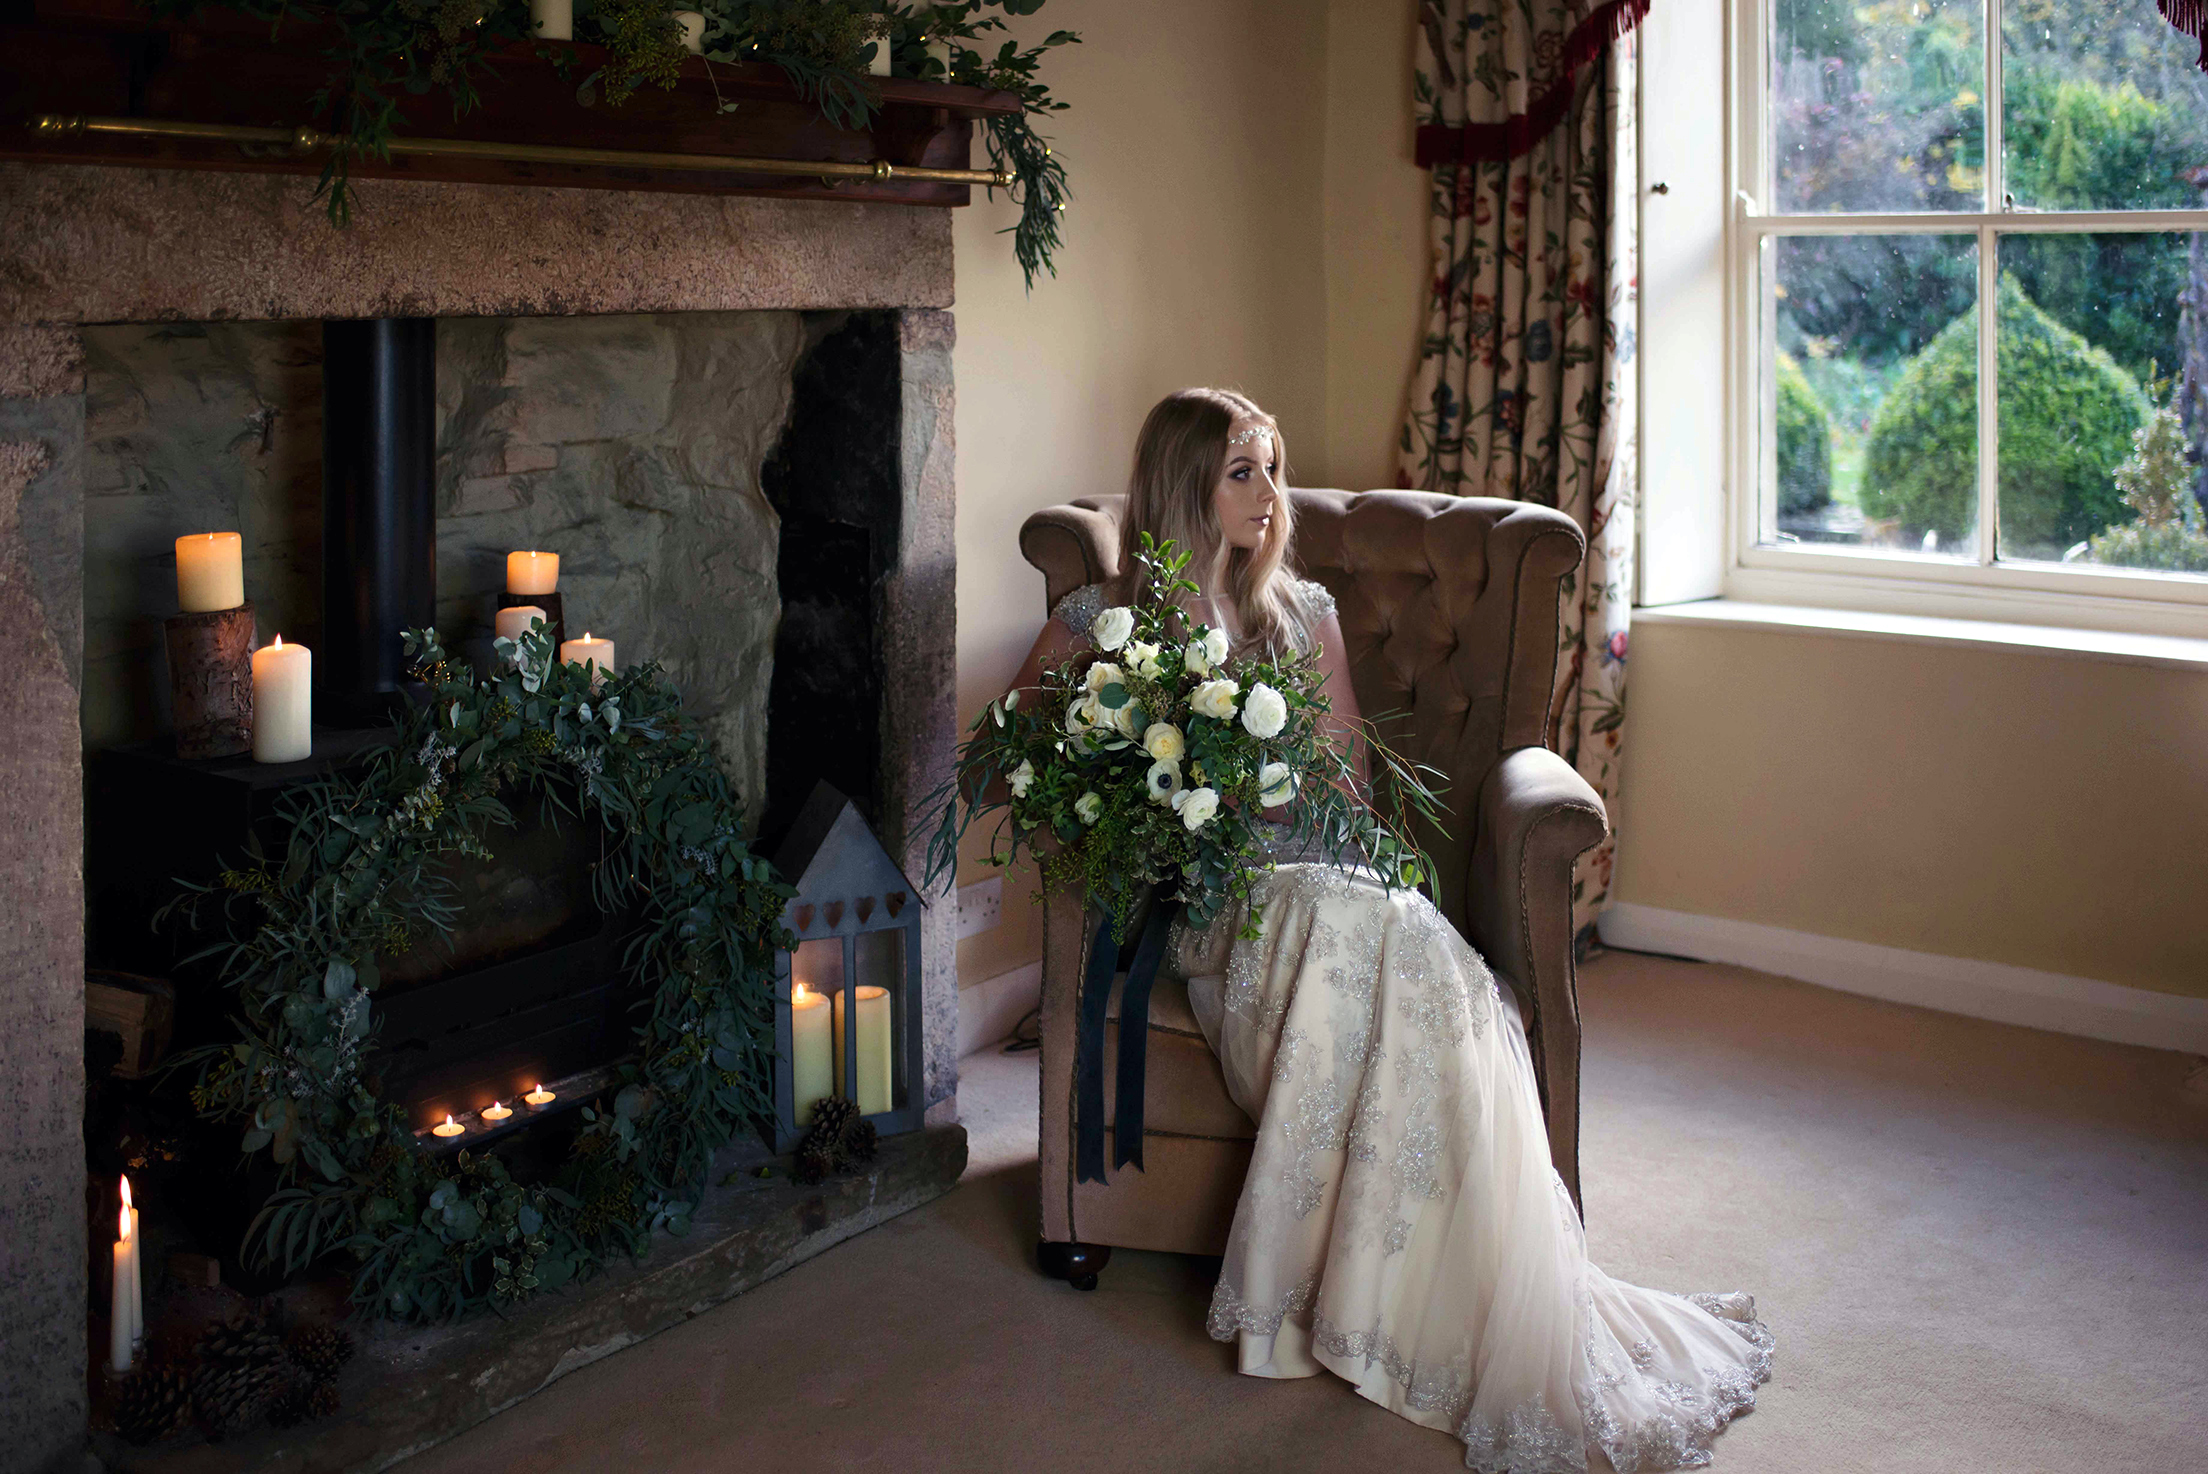 Brides Up North – Winter Hygge: A Rustic Wedding Styled Shoot In Yorkshire